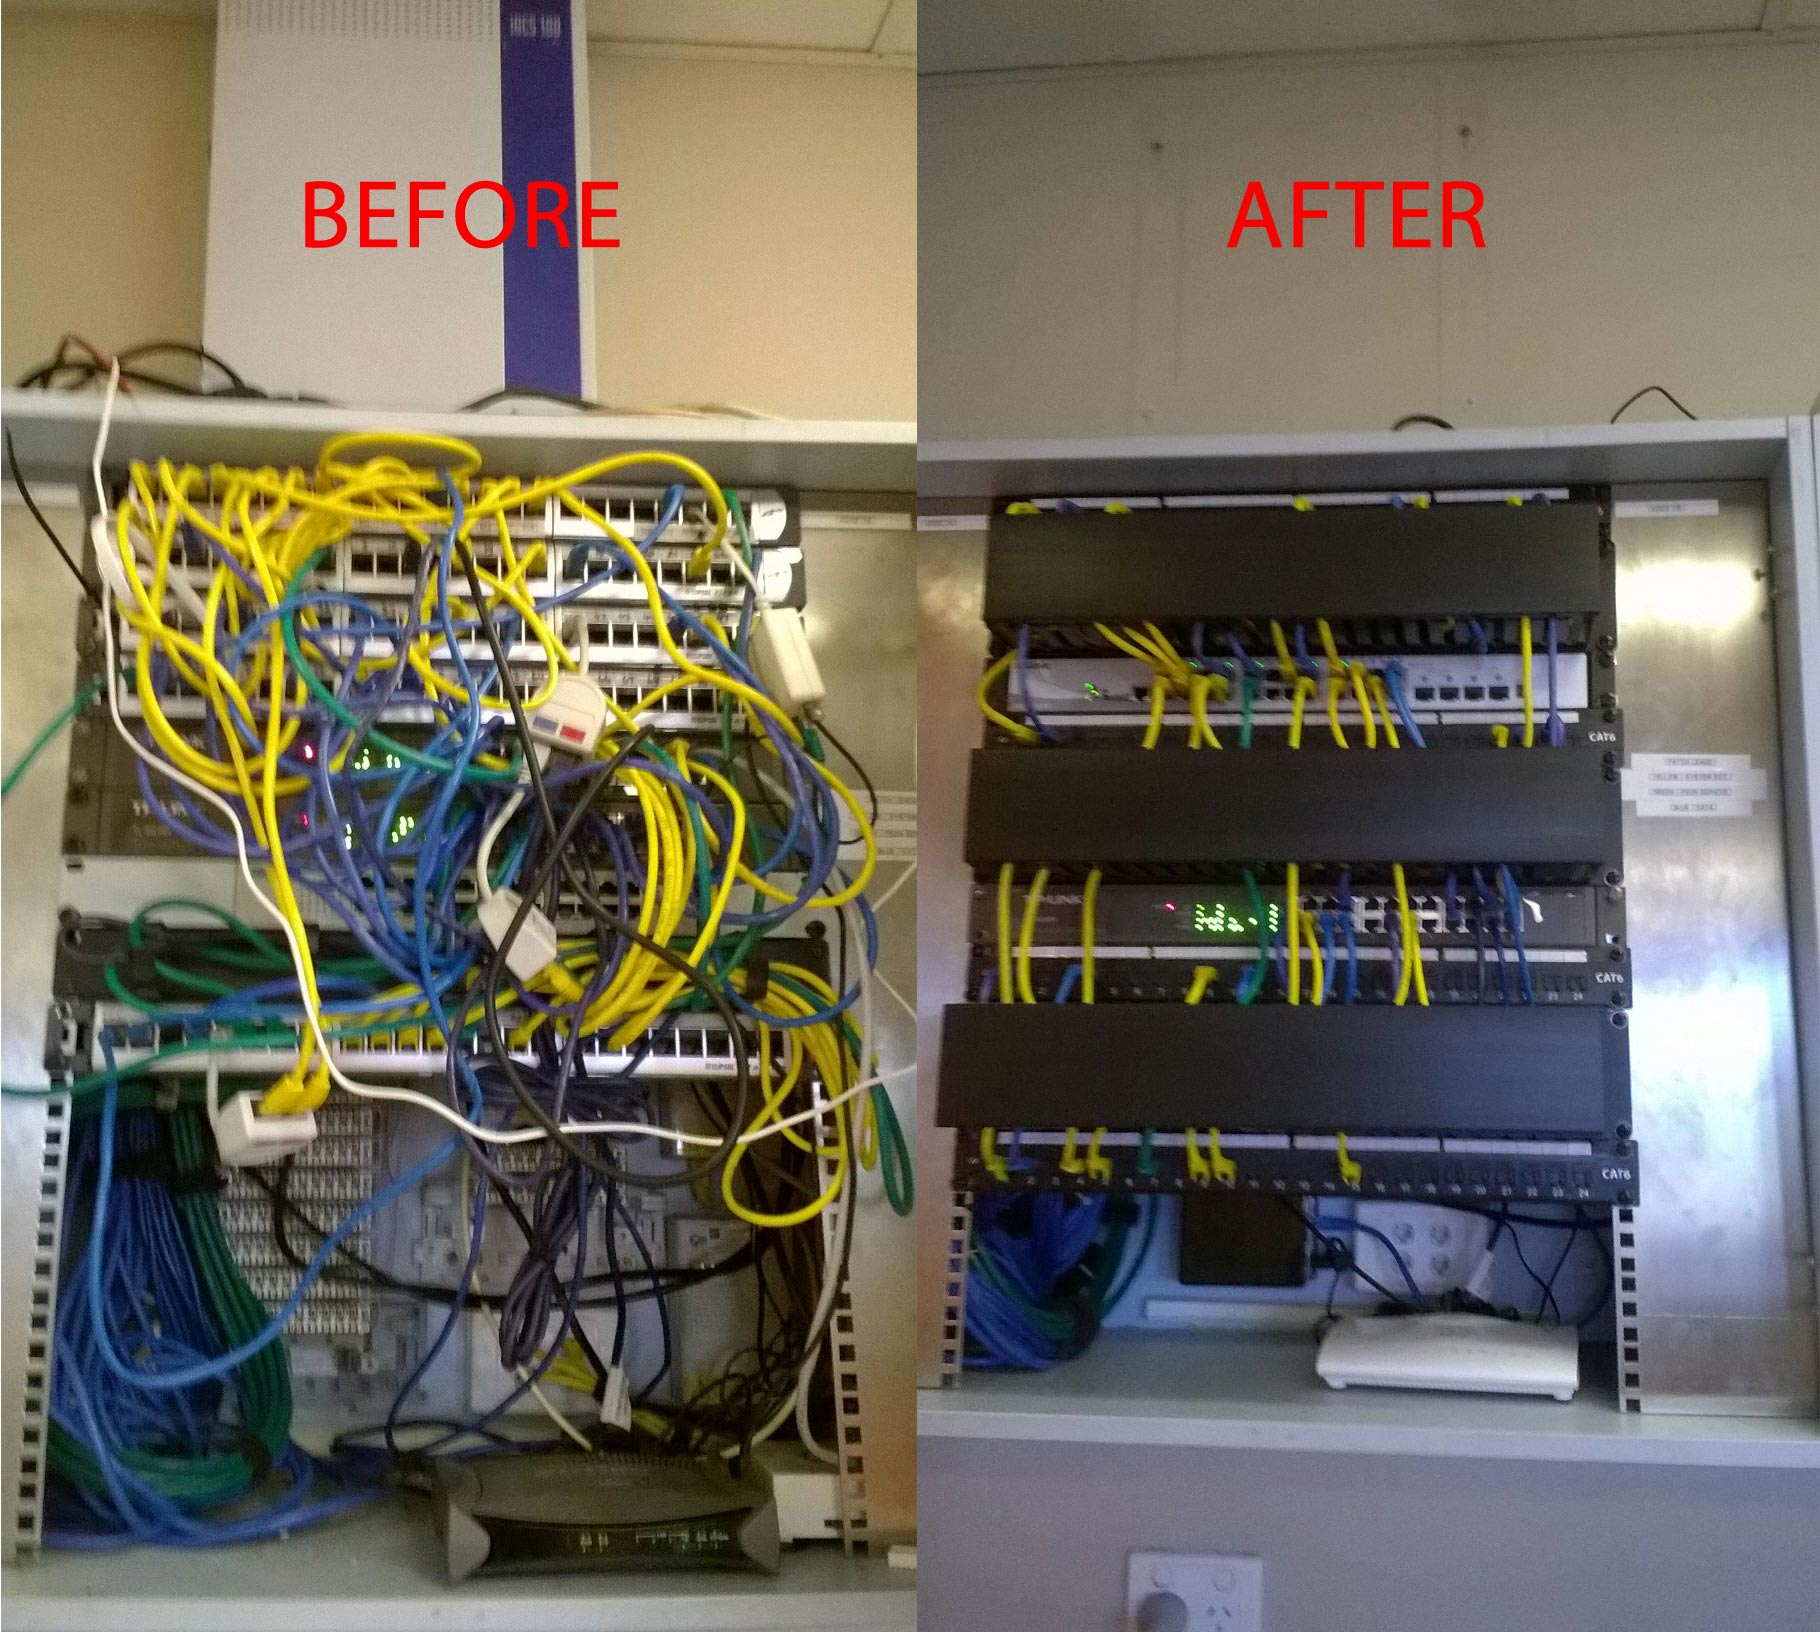 Magnificent 110 Patch Panel Wiring Diagram Online Wiring Diagram Wiring Cloud Mousmenurrecoveryedborg